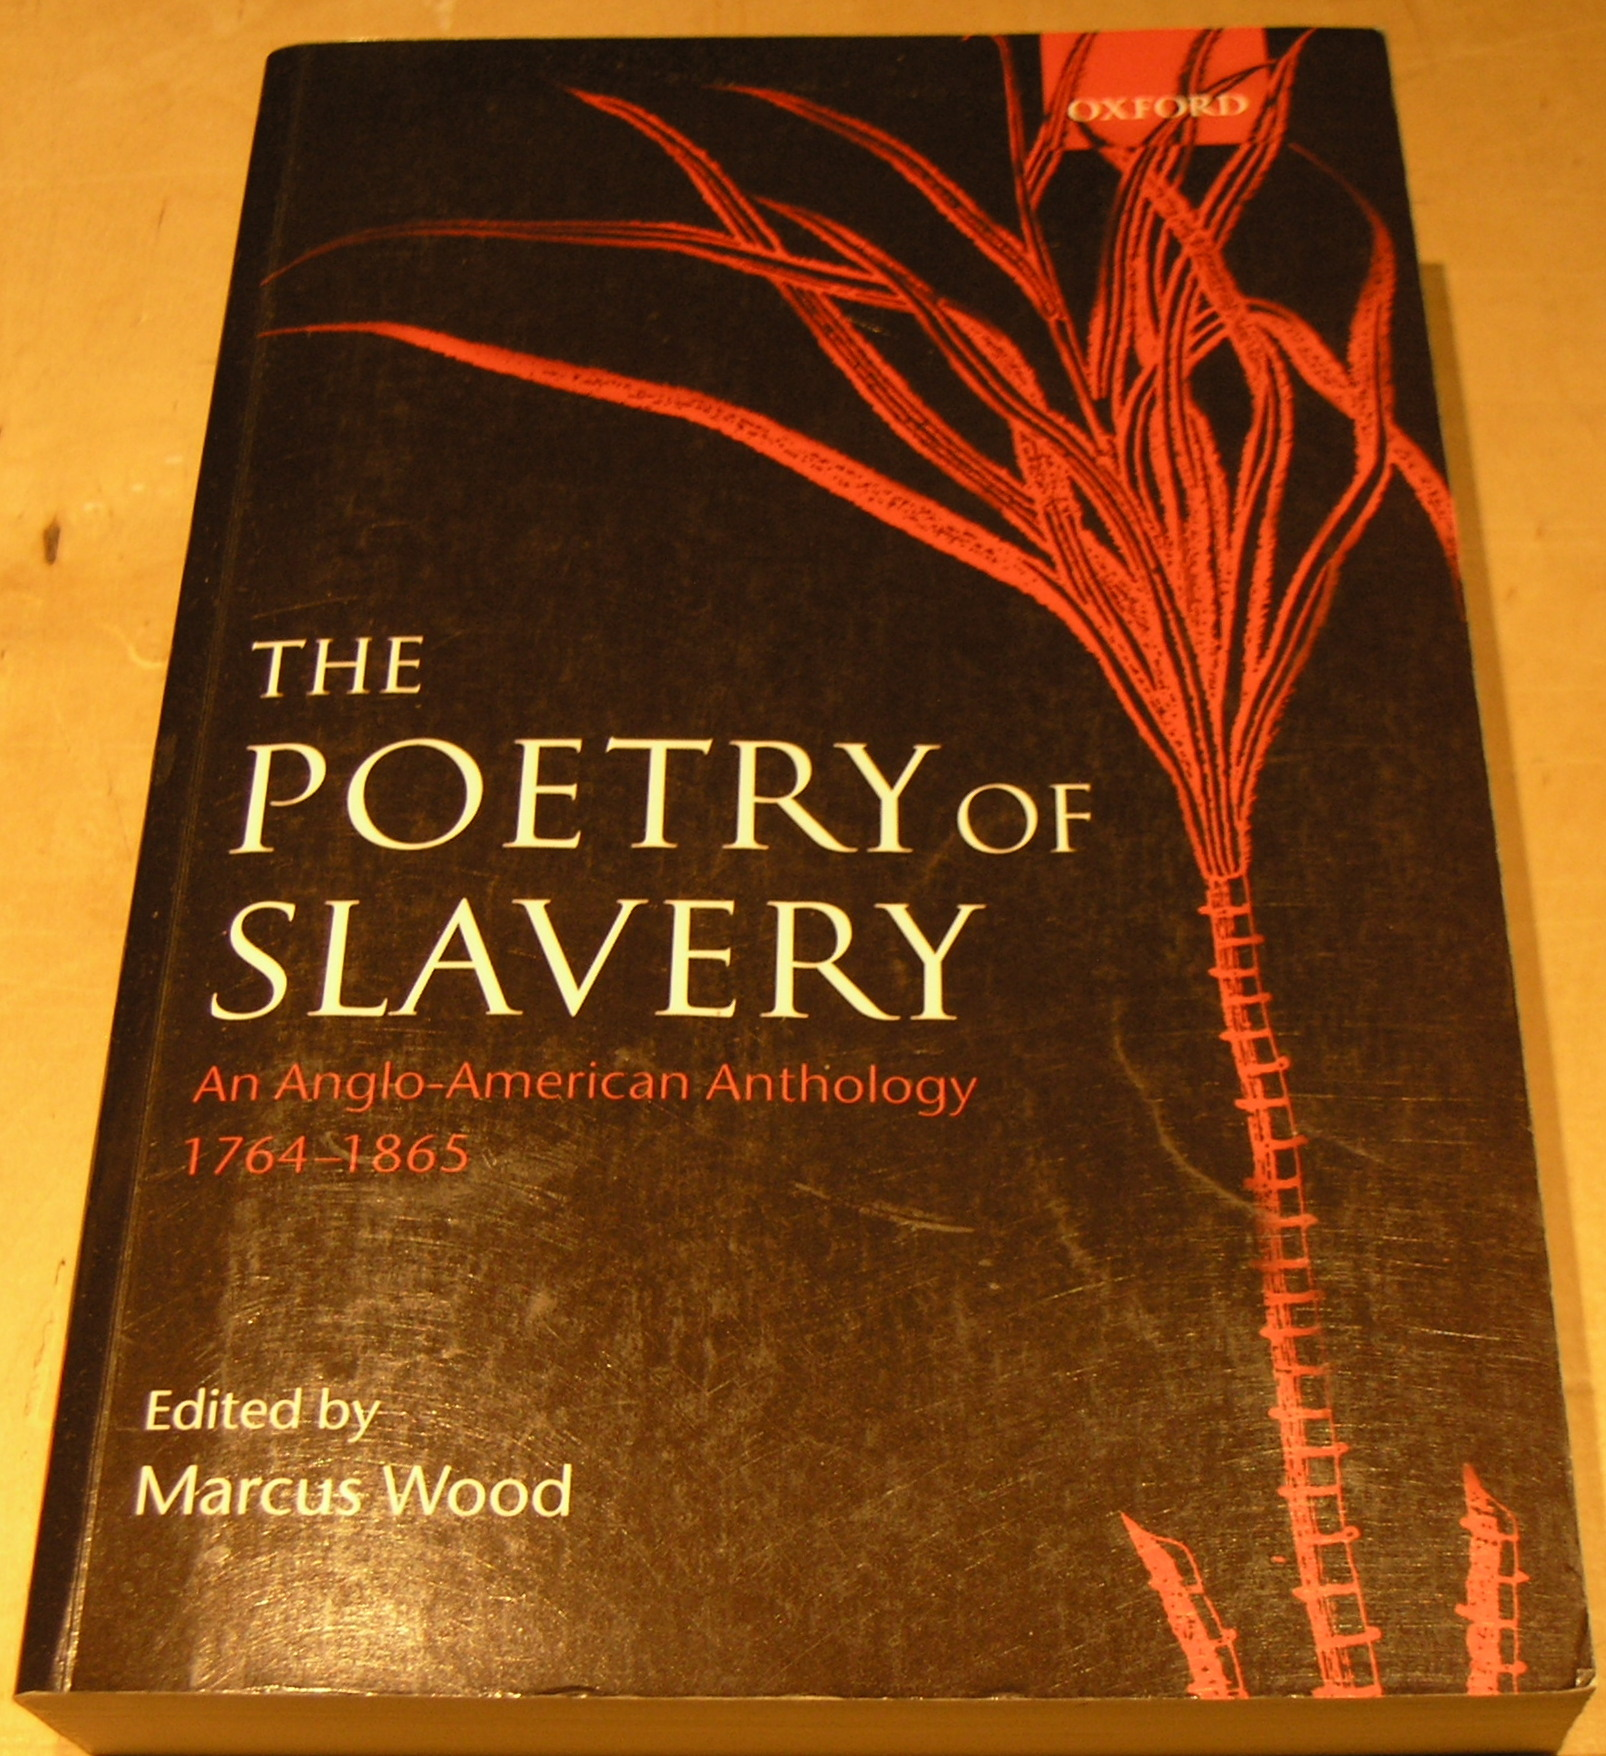 Image for The Poetry of Slavery: An Anglo-American Anthology, 1764-1865